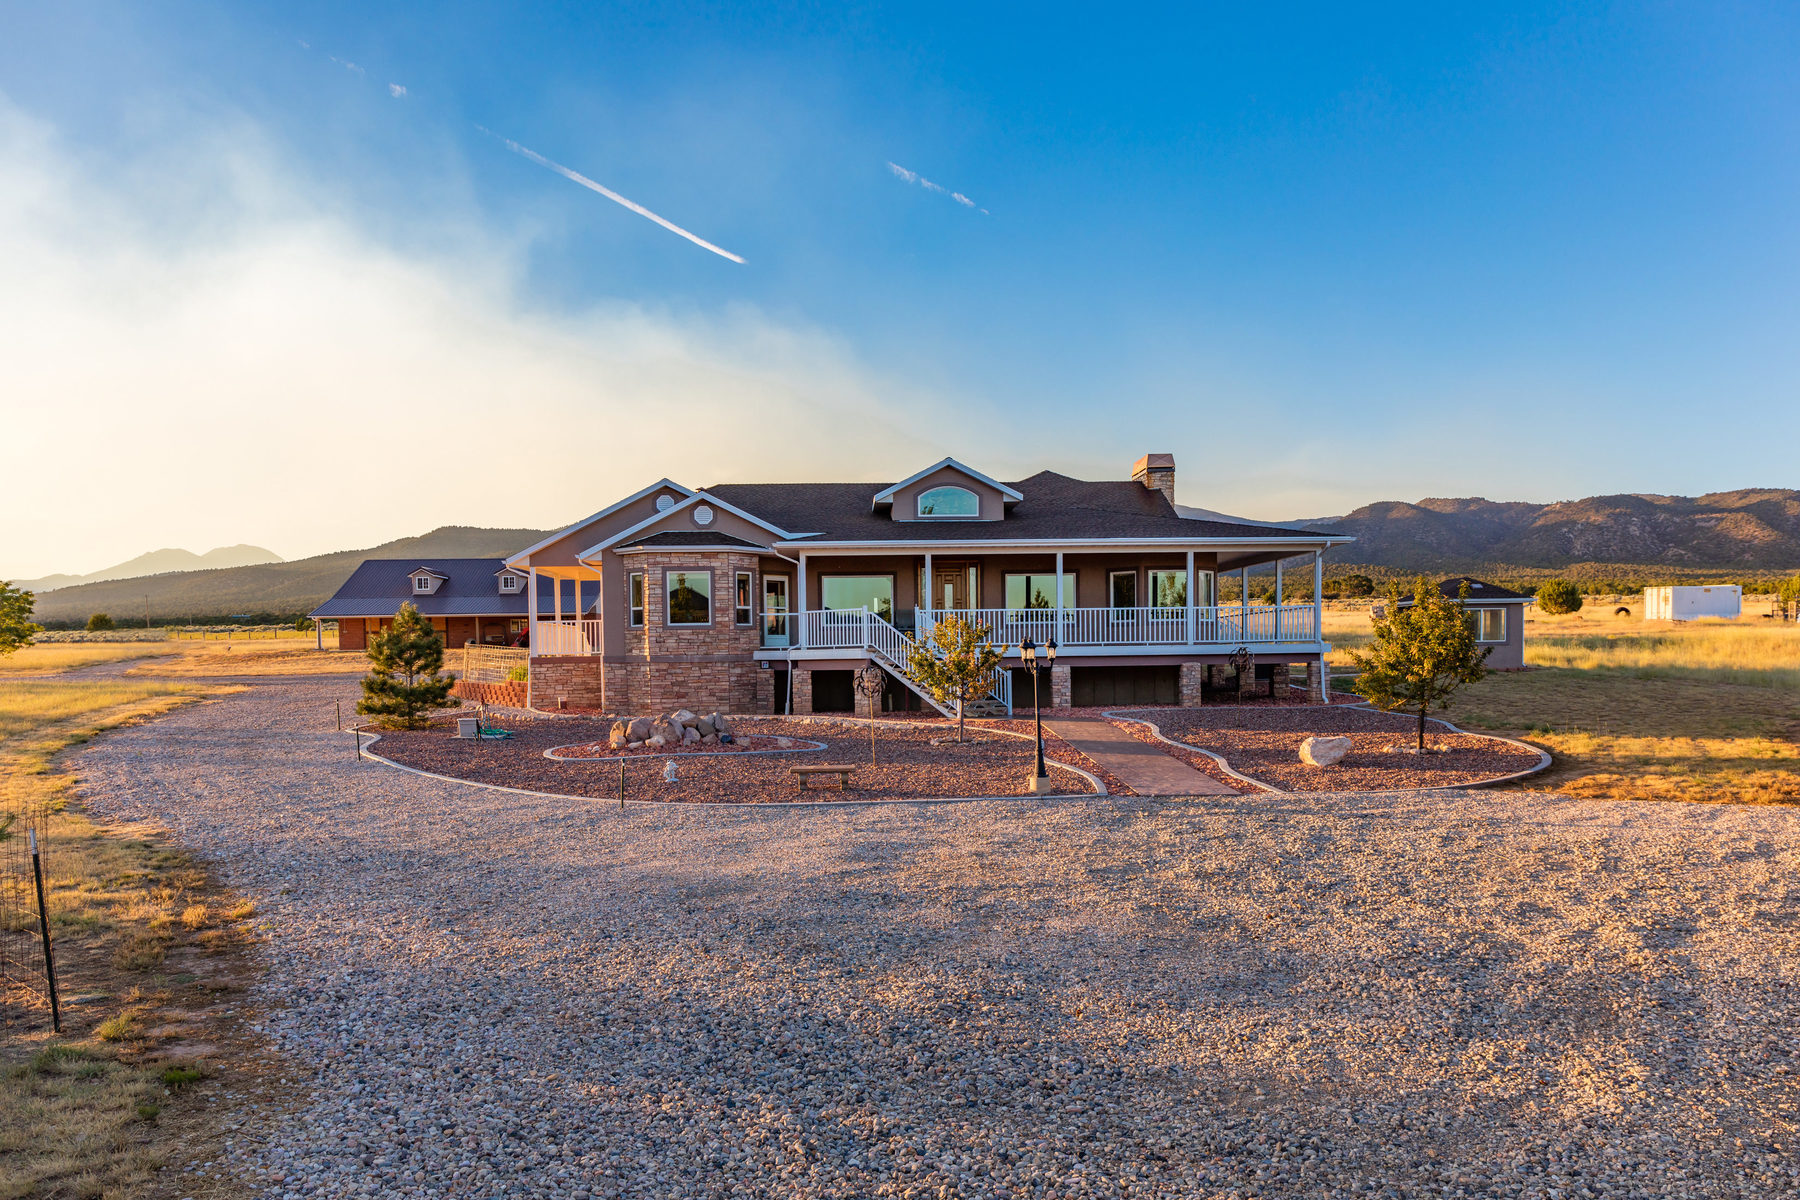 Single Family Home for Sale at 40 ACRE RANCH NEAR ZION 748 North 175 East New Harmony, Utah 84757 United States